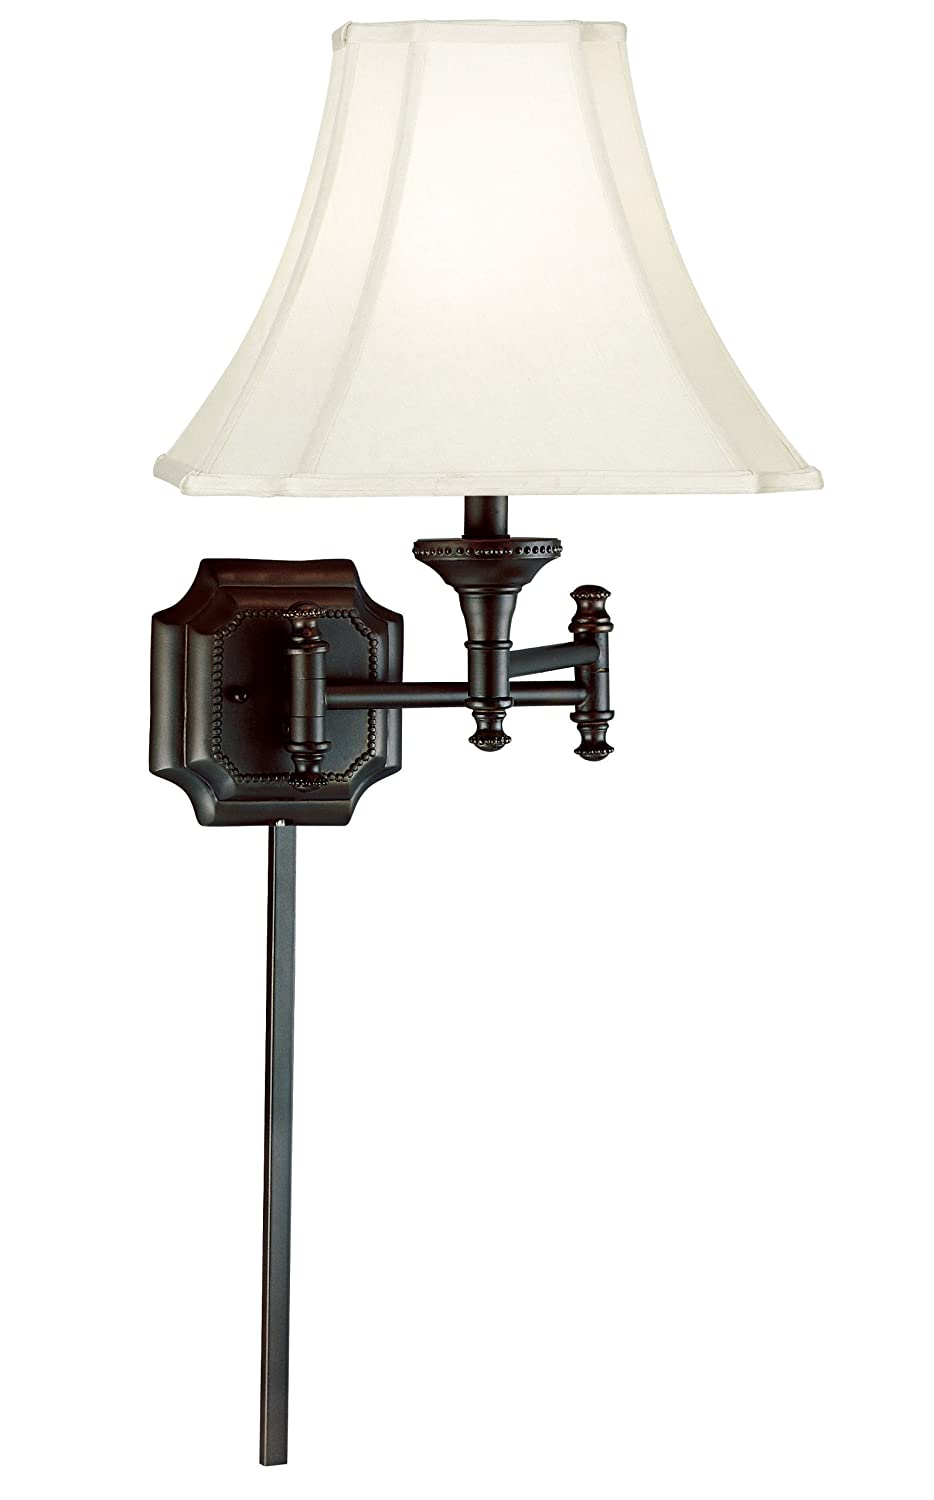 Kenroy Home 33054BBZ Wentworth Wall Swing Arm Lamp, Burnished Bronze - Wall  Sconces - Amazon.com - Kenroy Home 33054BBZ Wentworth Wall Swing Arm Lamp, Burnished